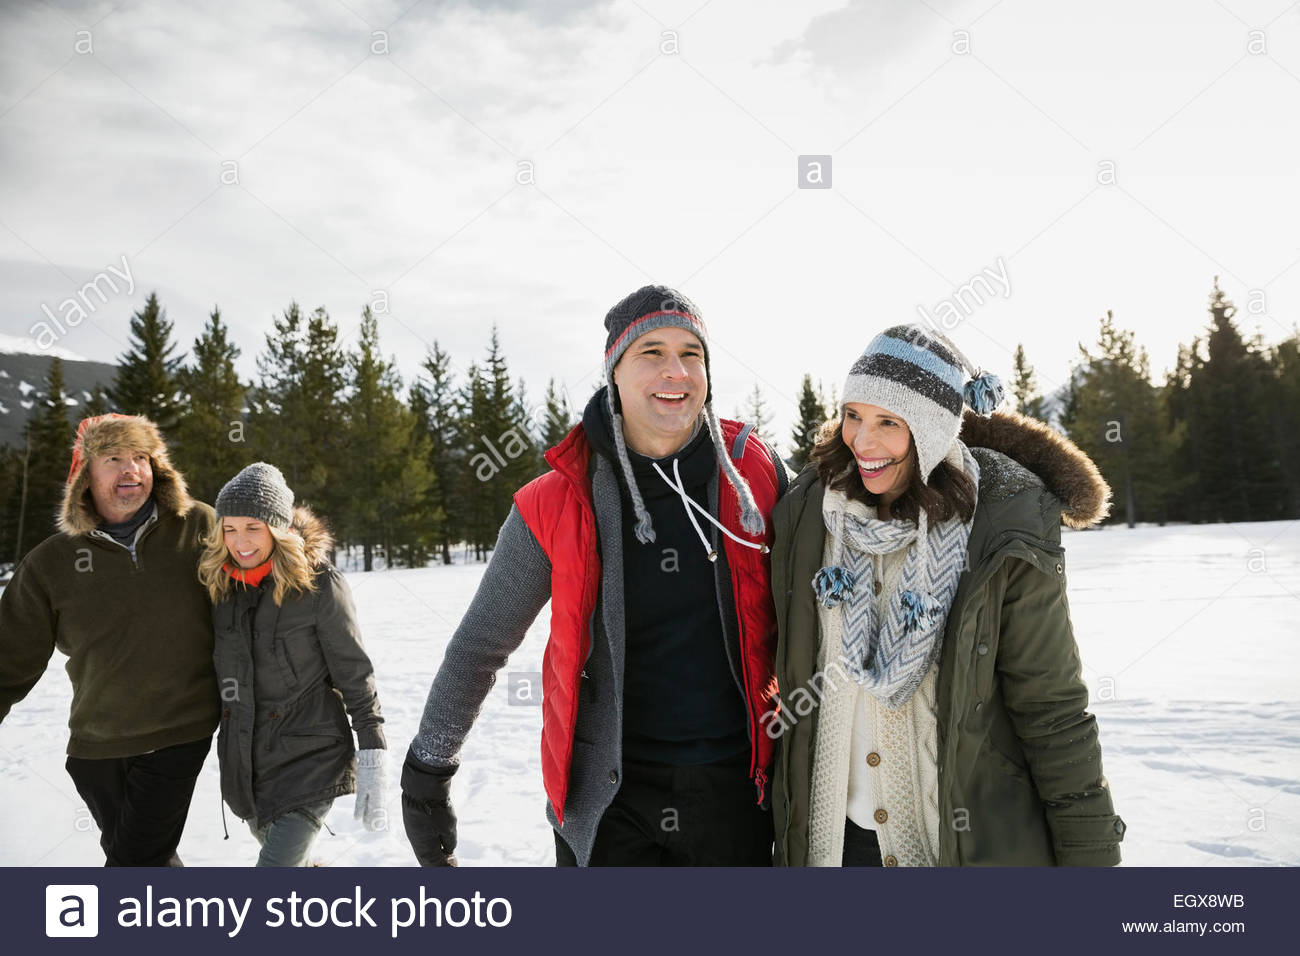 Smiling couples walking in snowy field - Stock Image